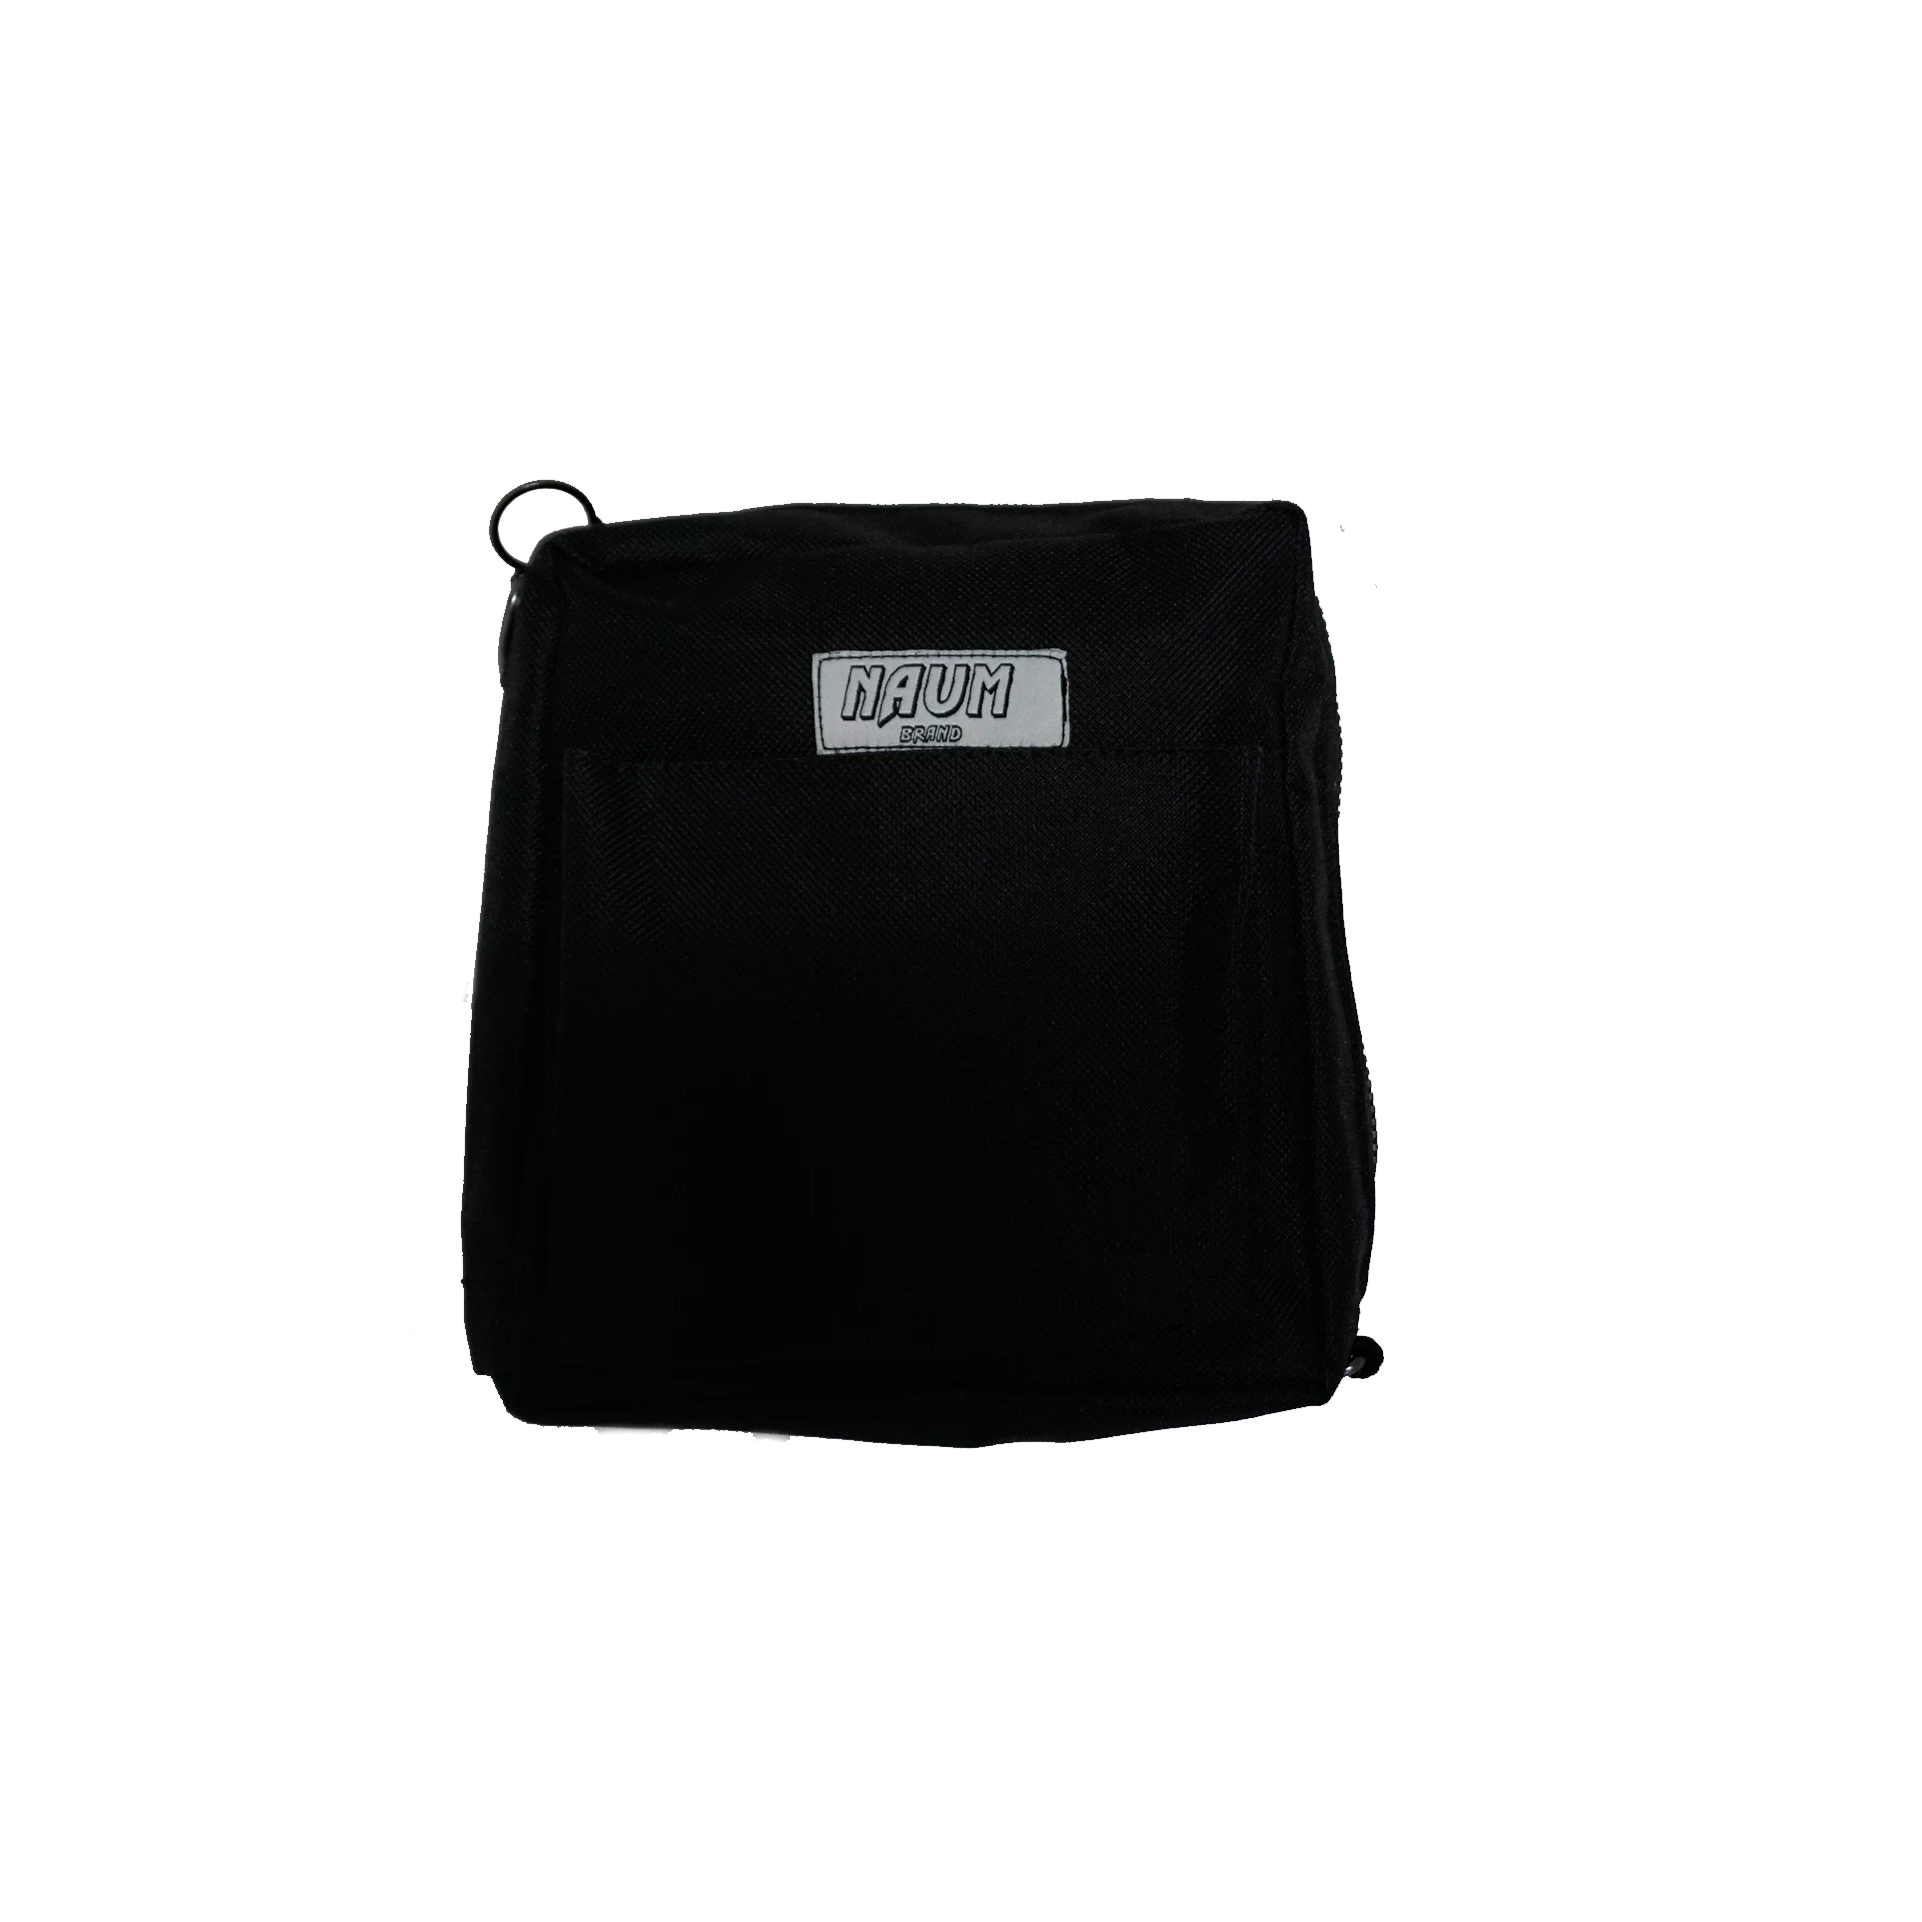 NAUM Side Bag